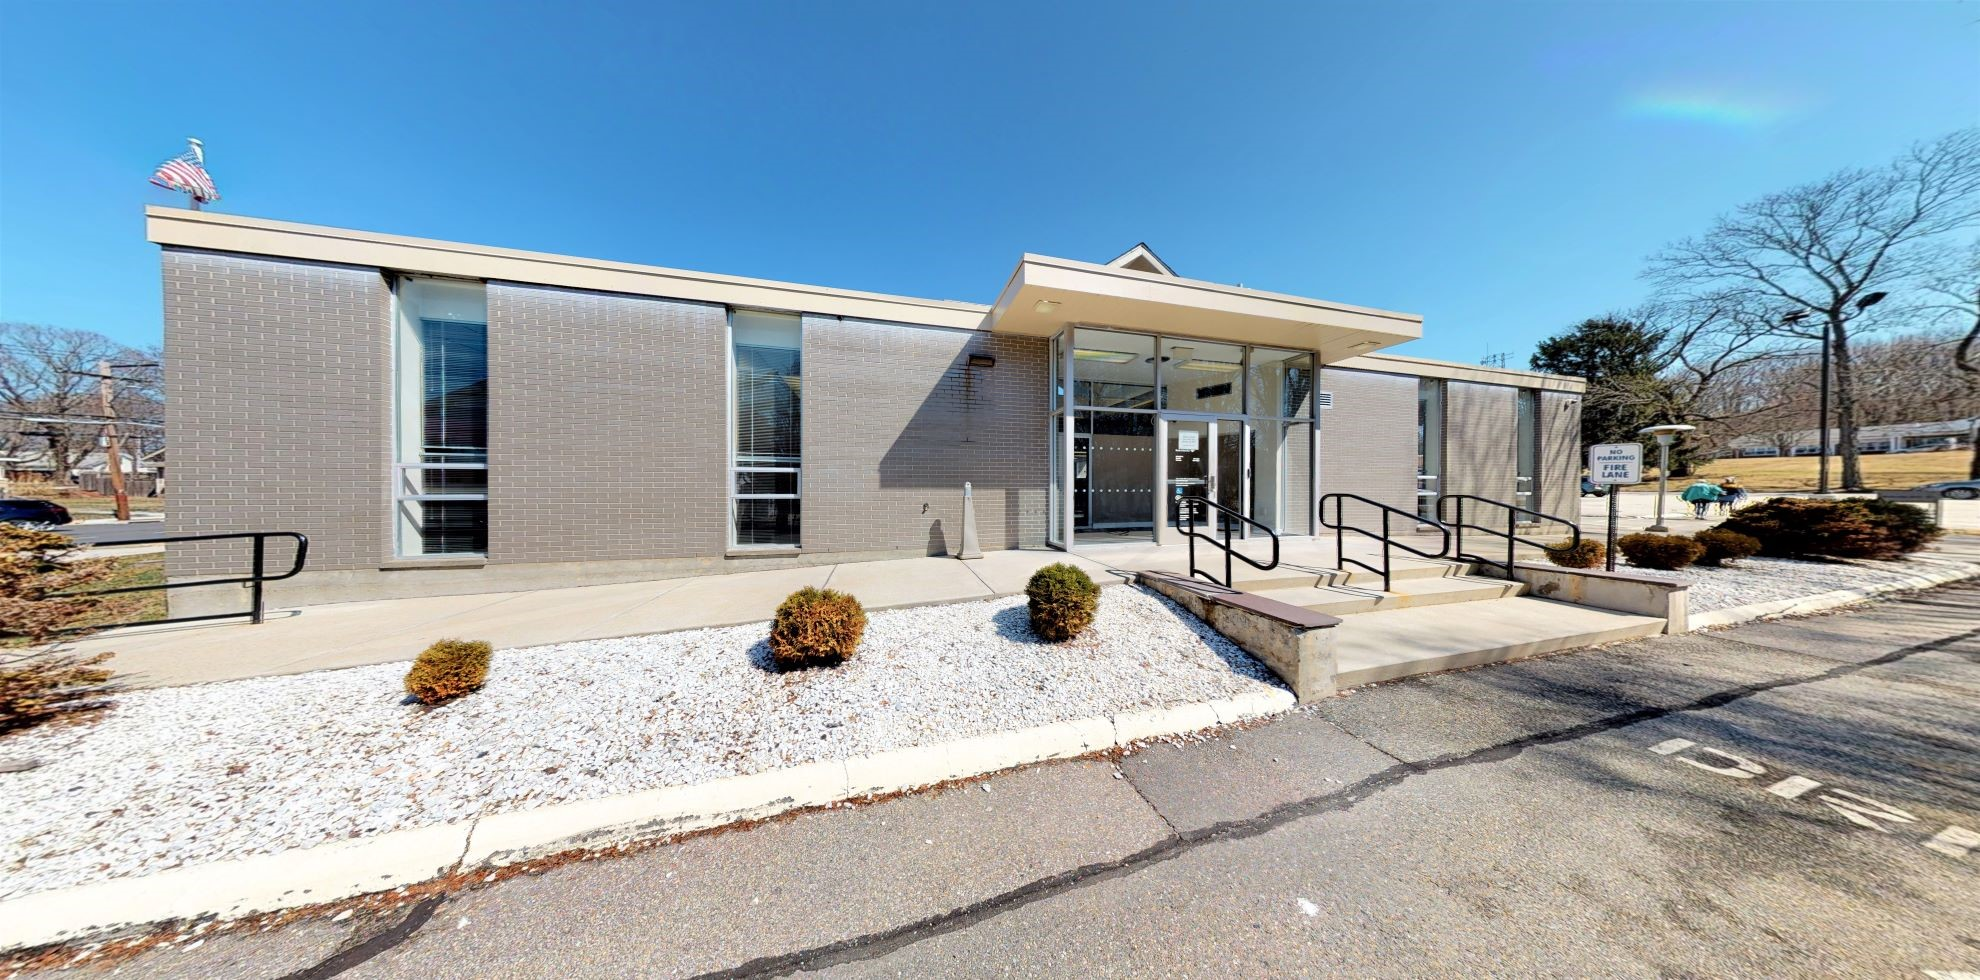 Bank of America financial center with drive-thru ATM | 304 Main St, Danielson, CT 06239